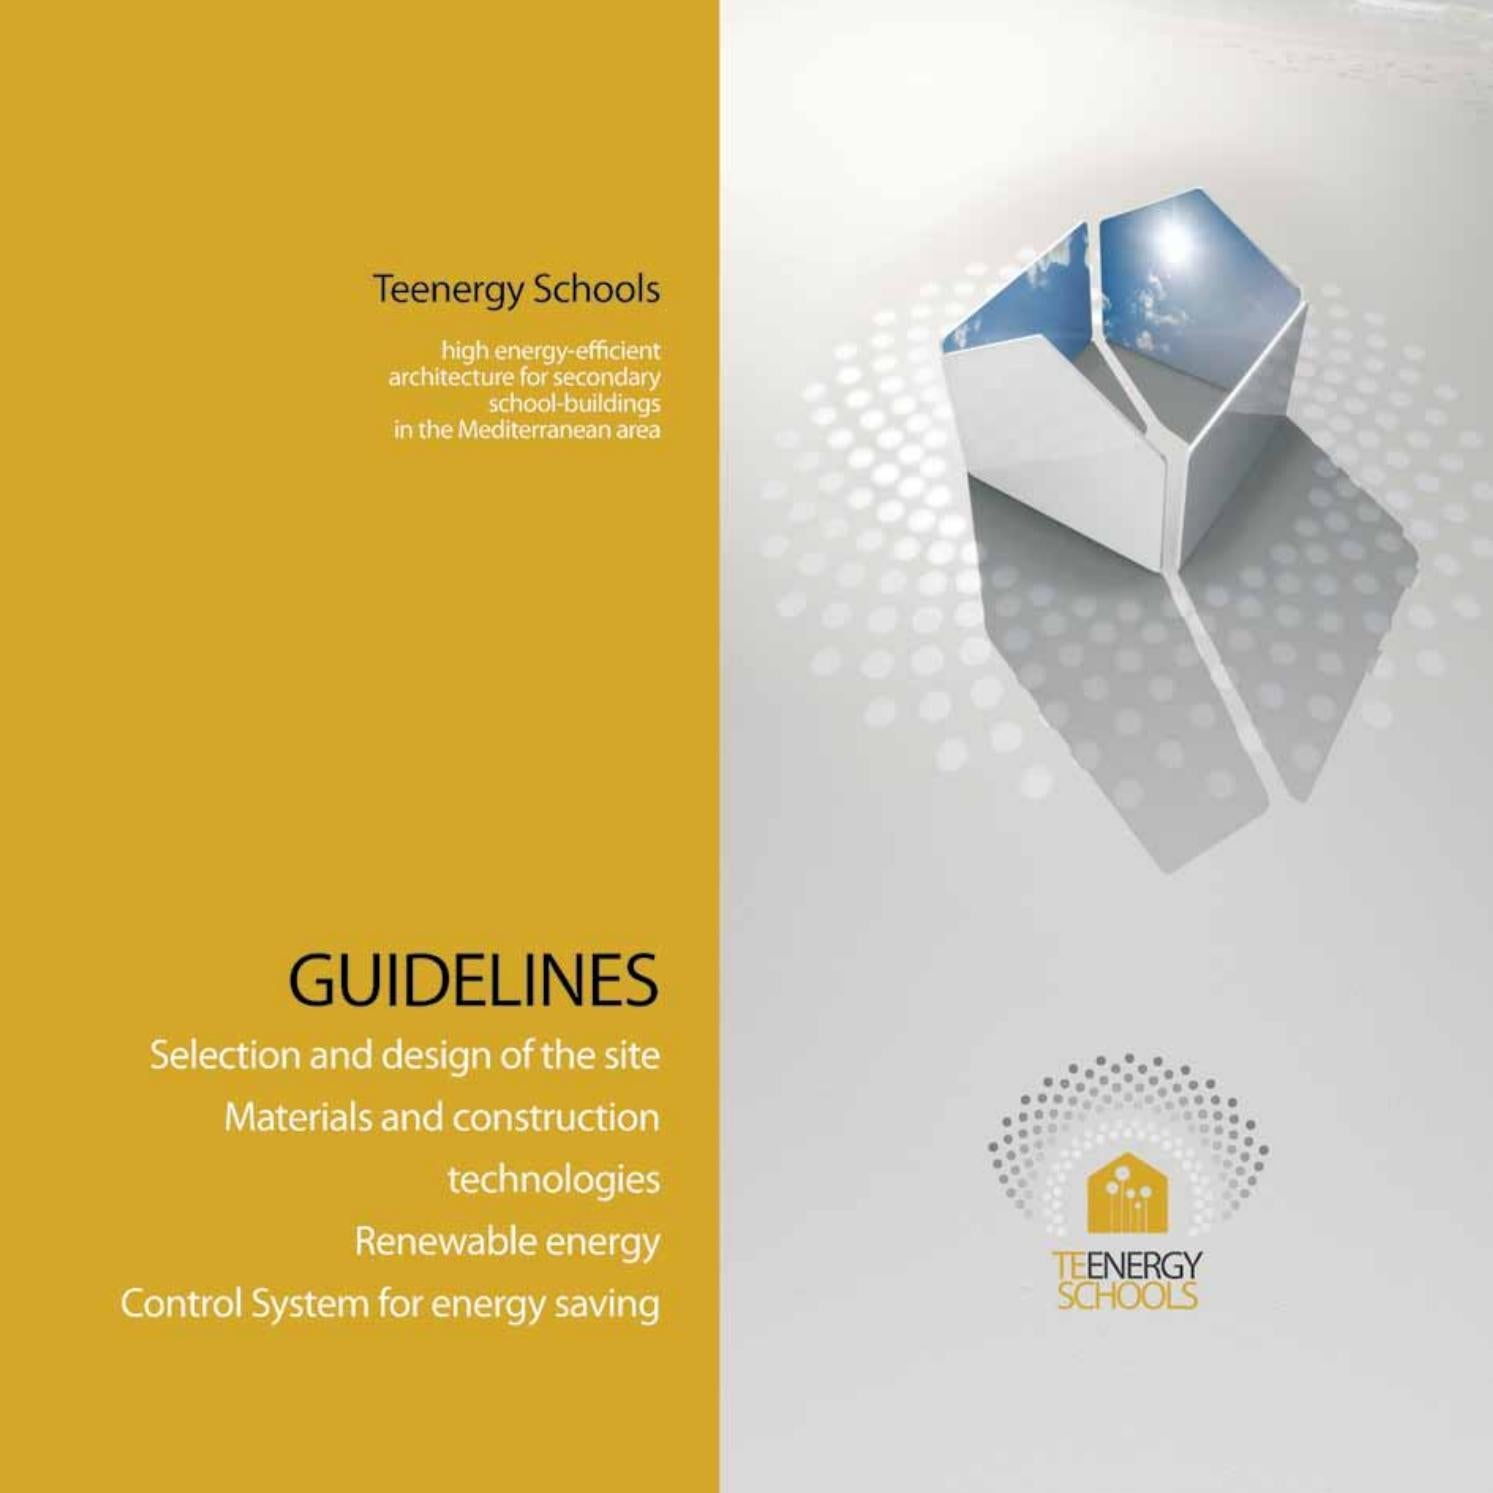 Teenergy School. Guidelines by rosa romano - issuu